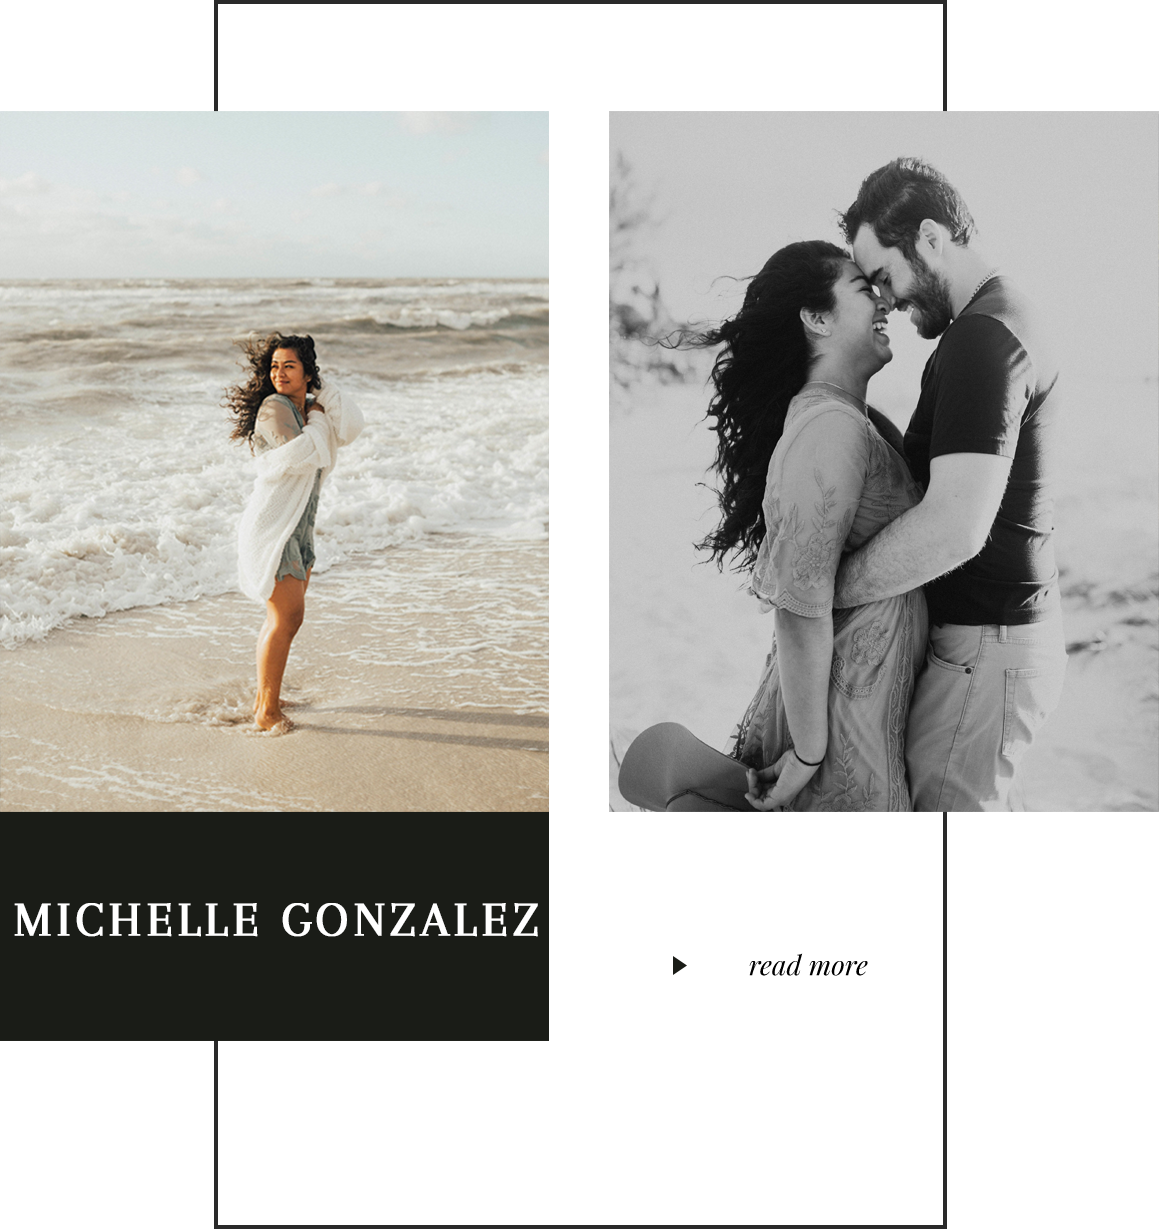 Hi! I'm Michelle - I'm a wedding and elopement photographer based in Fort Myers, Florida, but travel often to new places for love.Documenting love stories is my passion. To me its not just about taking photos and delivering them. But rather, capturing the way people felt from the big belly laughs, to the happy tears. It's about reliving those feelings and being able to go back to that moment.I'm for the couple, who values these moments and wants them to be captured the way they remembered it. For the couple, who wants their images to express how the day felt, from the little details to the big feelings.Because in the end, photographs are all we have left.Your flowers will wilt,your venue will be gone tomorrow,and your cake will be eaten.But your photos will last. It's how we remember…the love, the laughs, the night.